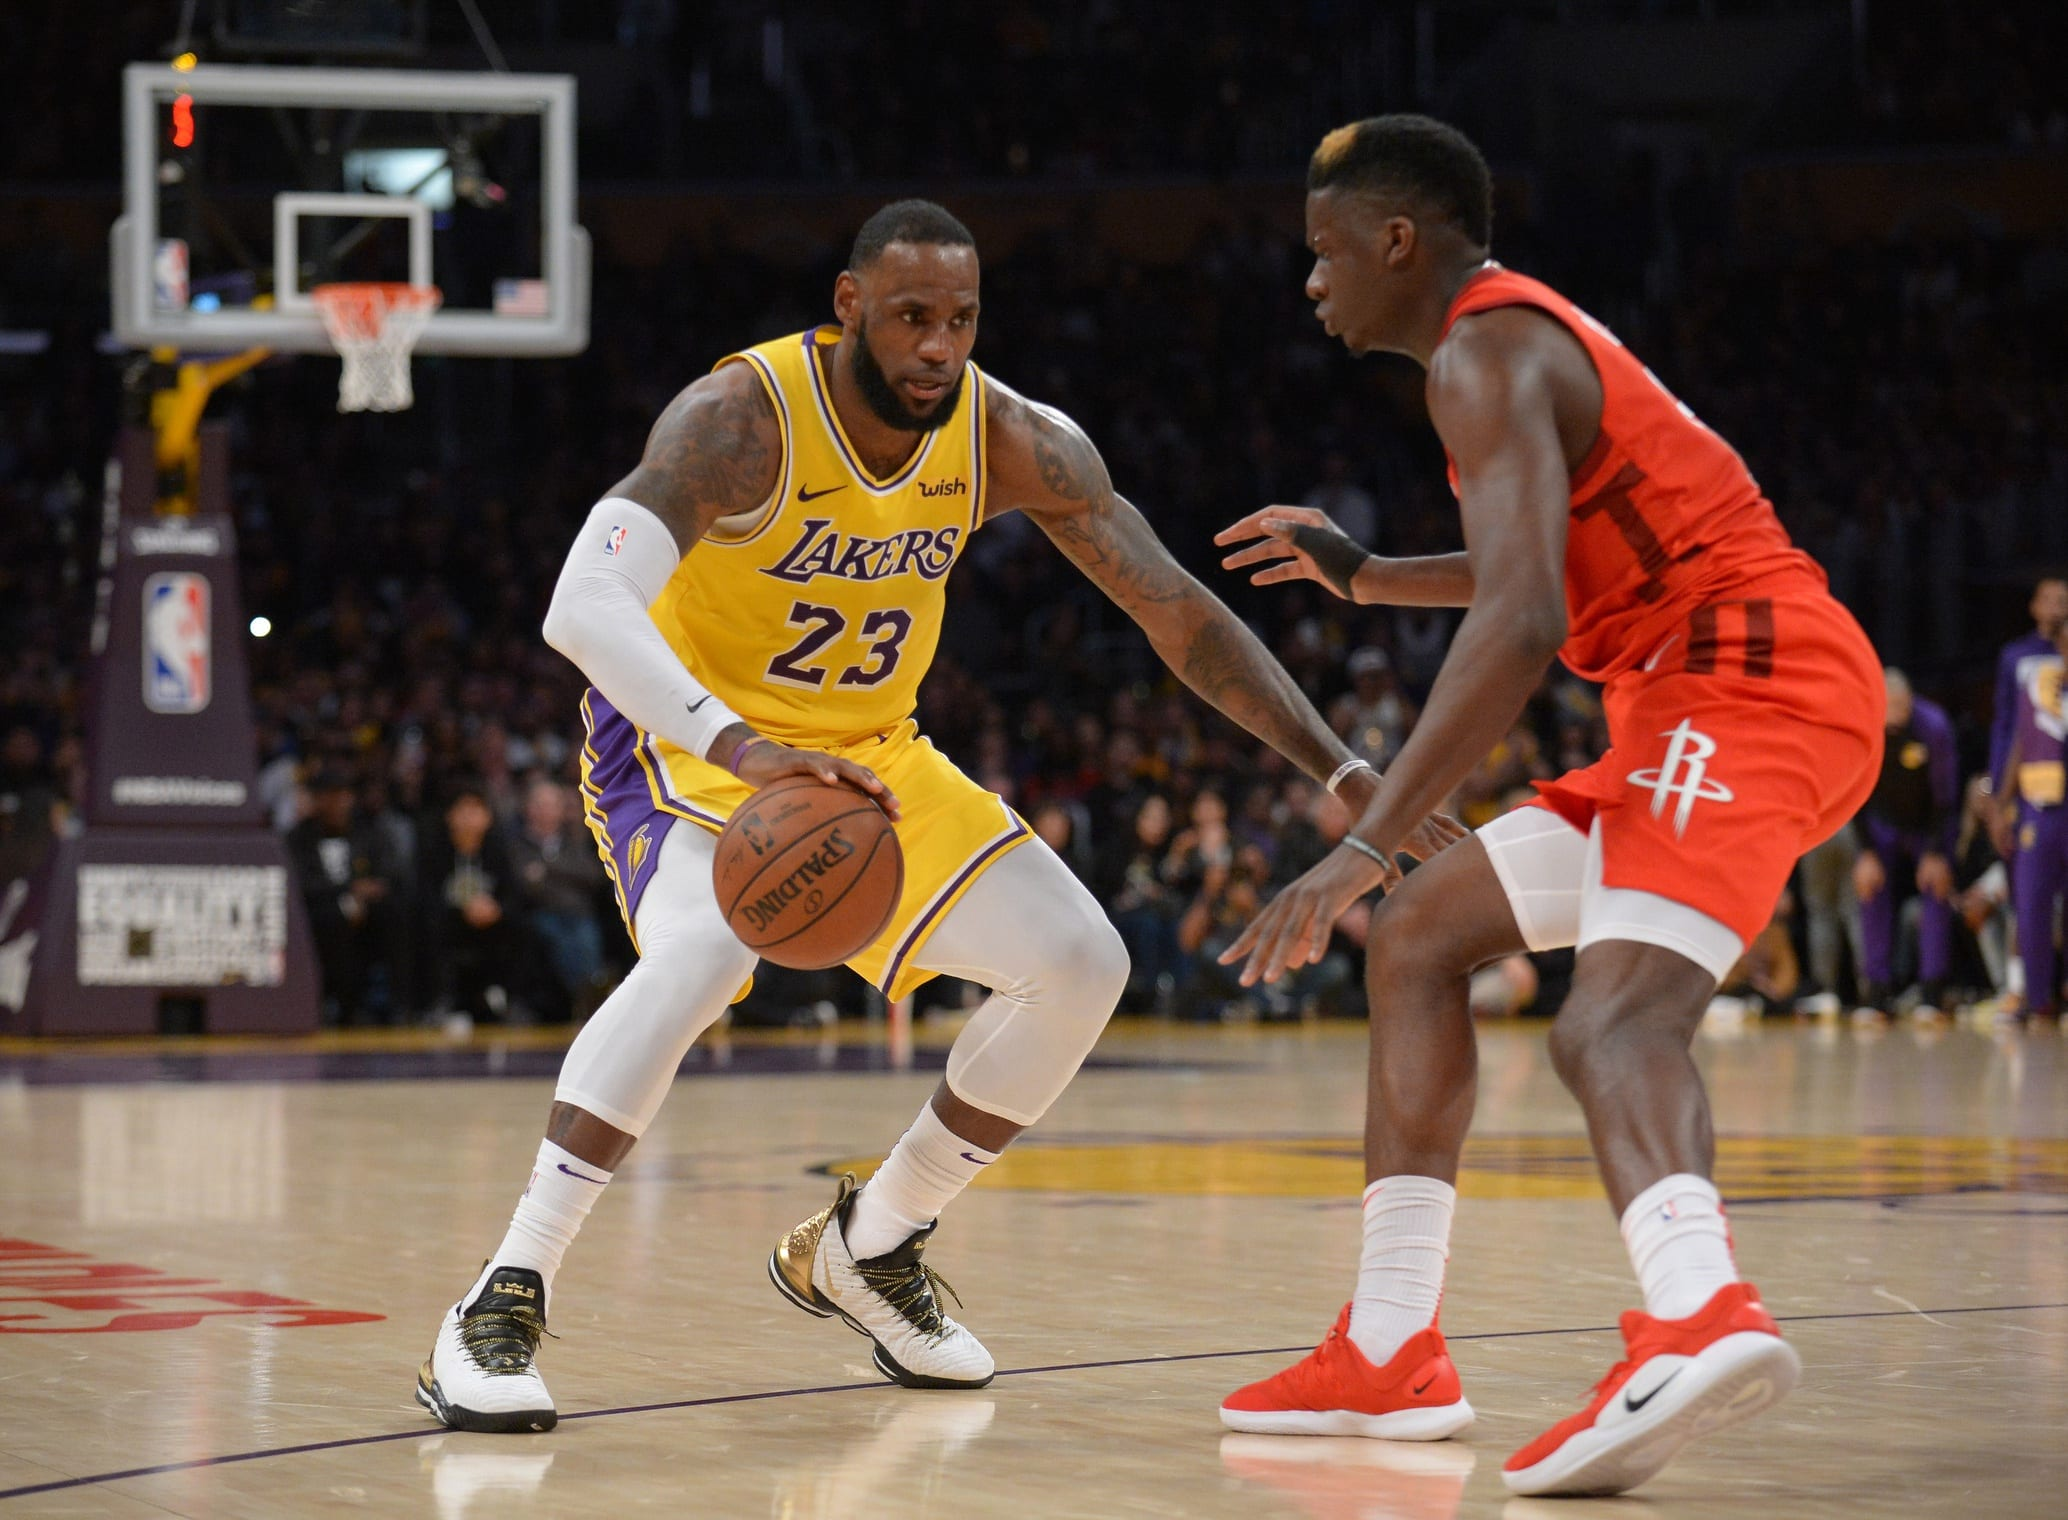 a3ea55f23ff3 Lakers News  LeBron James Confident In Playoff Chances  If I Can Get In